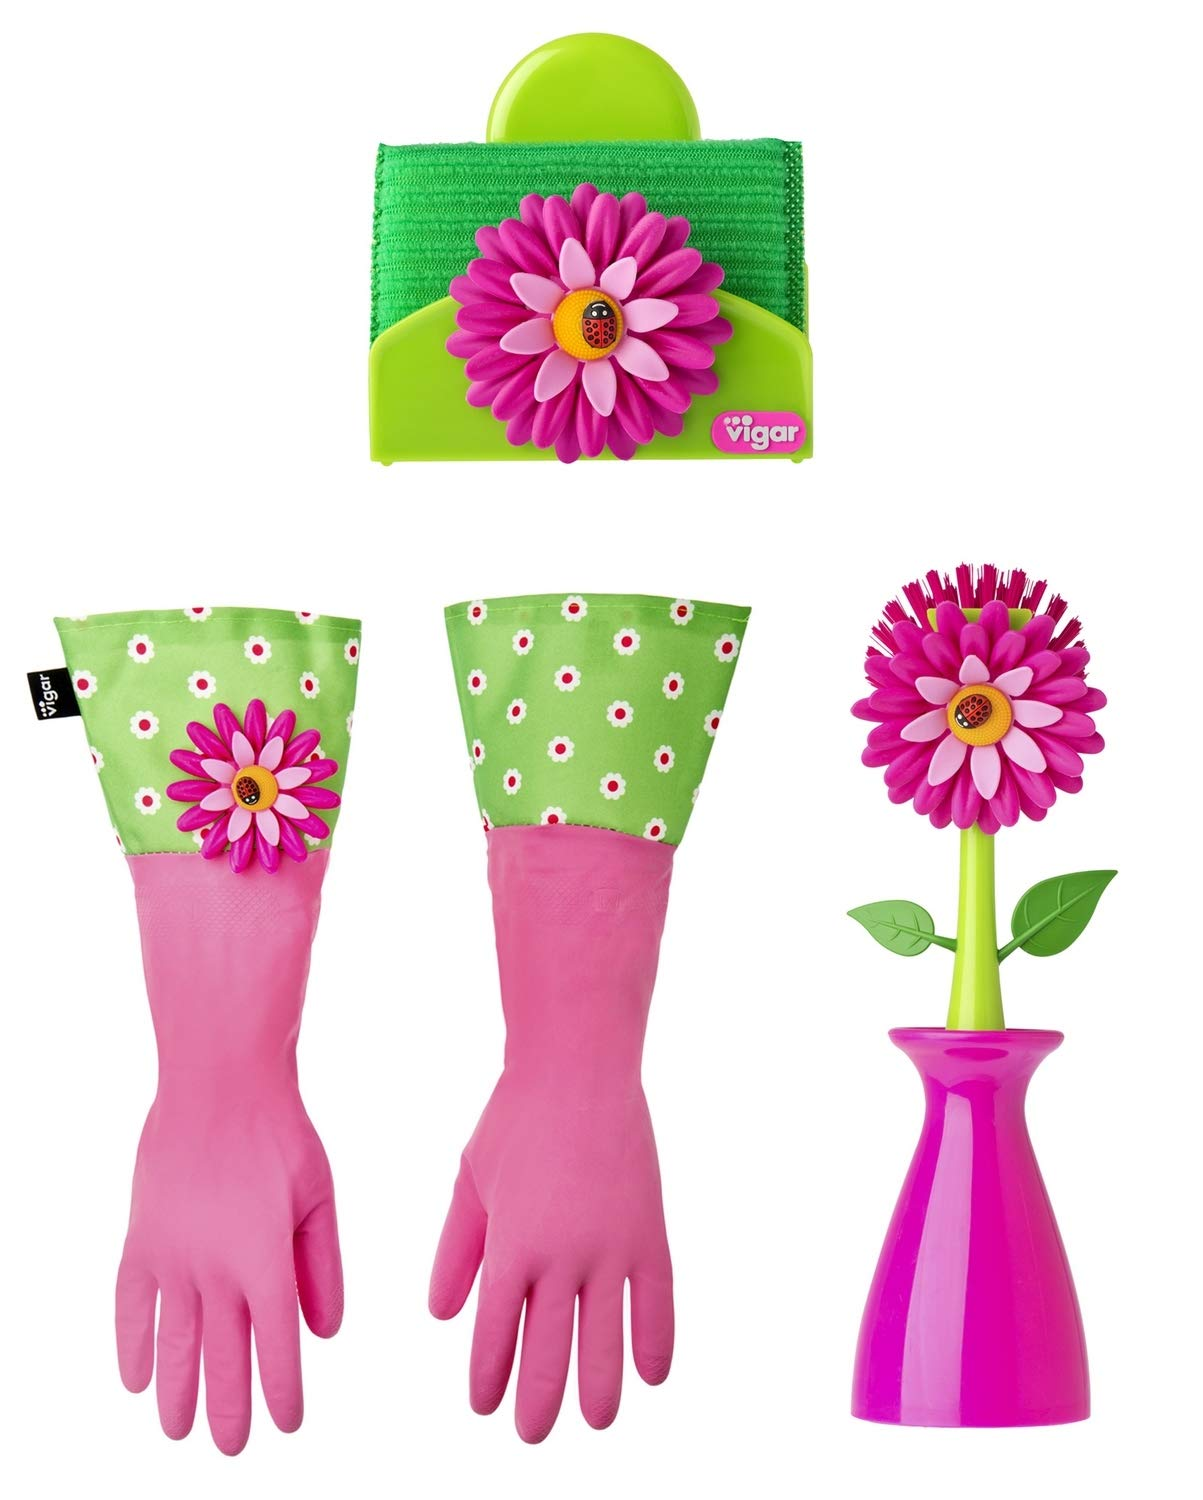 Vigar Flower Power 3-Piece Dishwashing Set, Includes Dish Brush with  Holder, Sponge with Holder and Latex Dish Gloves with Extra Long Cuff, ...